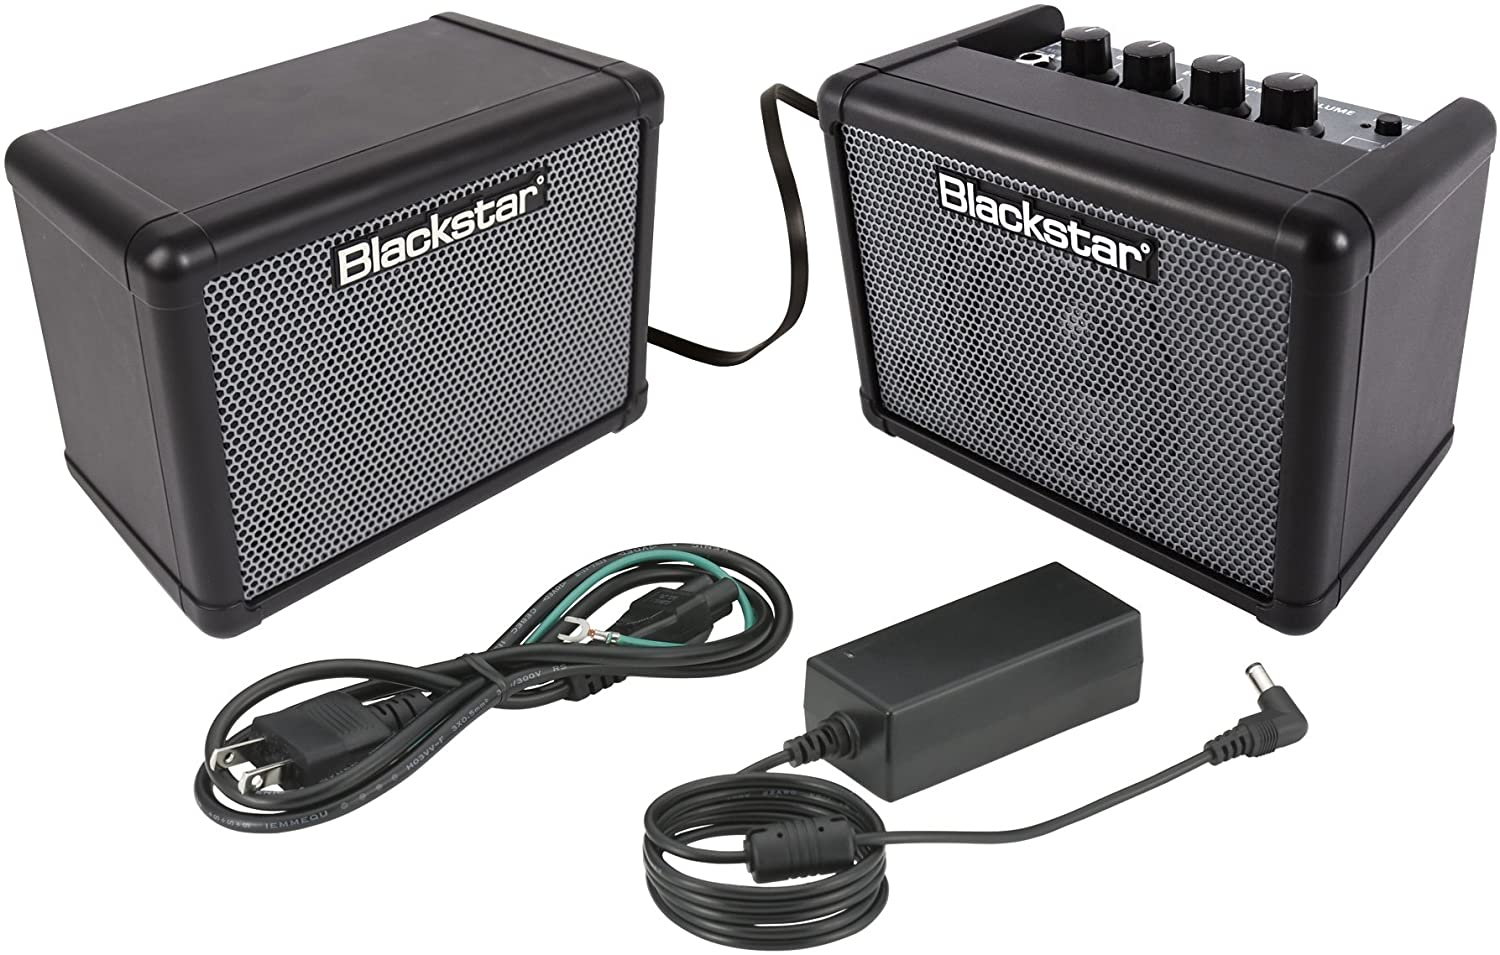 Blackstar FLY3BASSPAK Stereo Pack Electric Guitar Korg USA Inc.